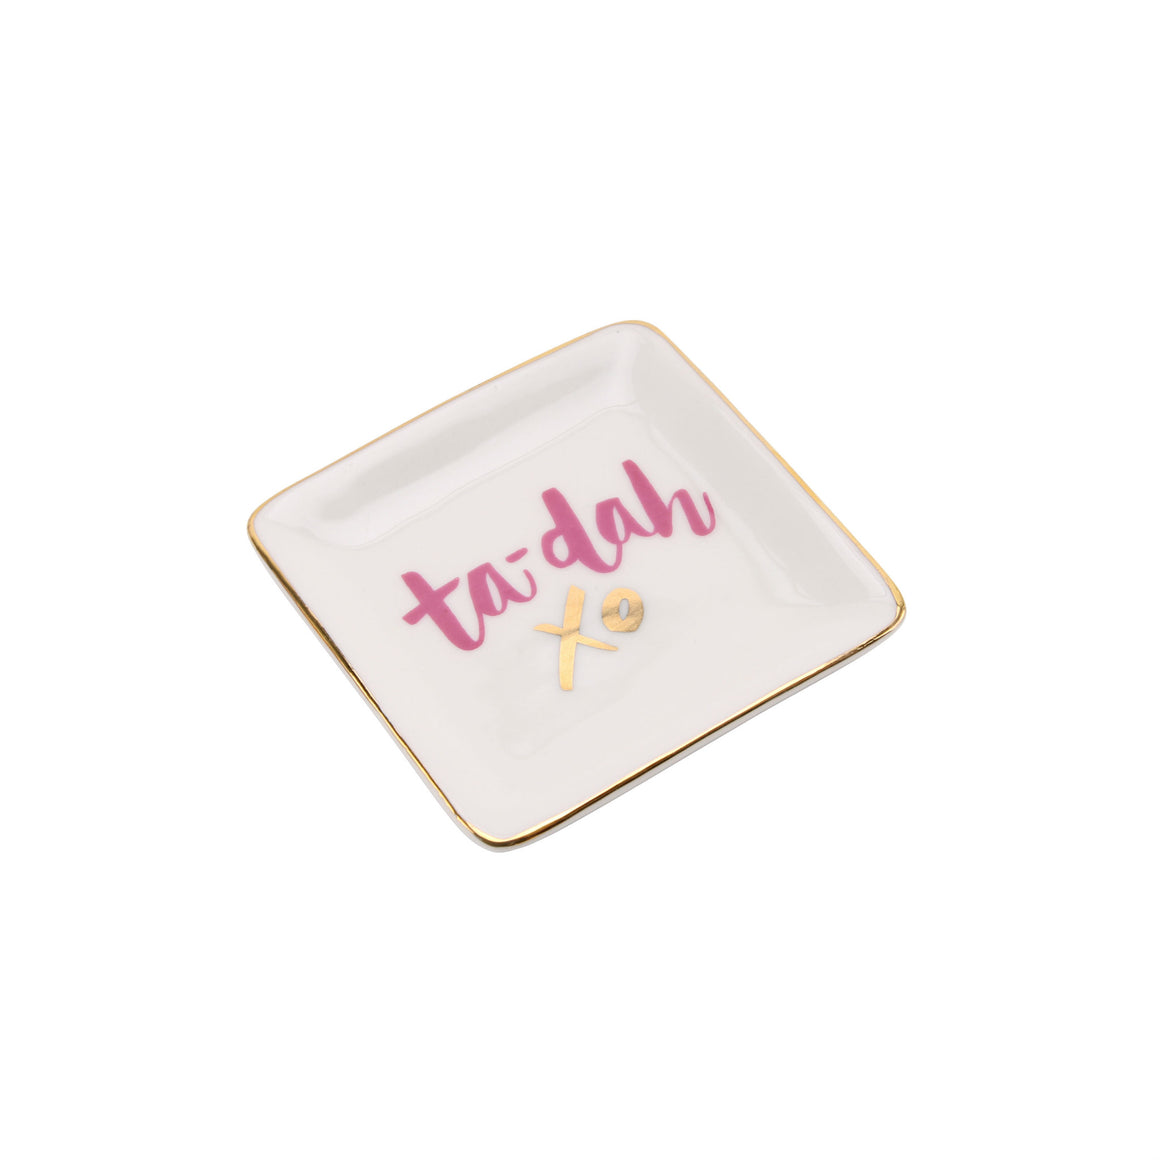 'Ta-Dah xo' Ceramic Ring Dish - The Love Trees